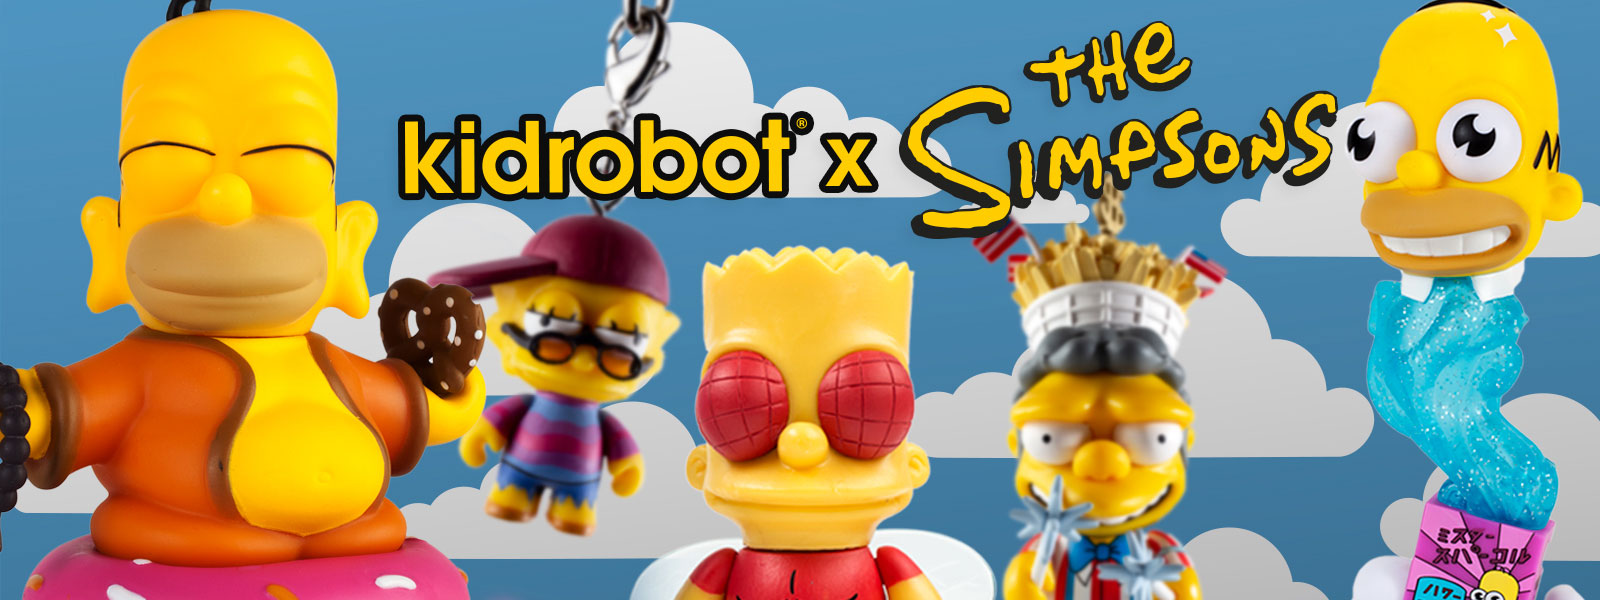 The Simpsons Toys & Collectibles from Kidrobot